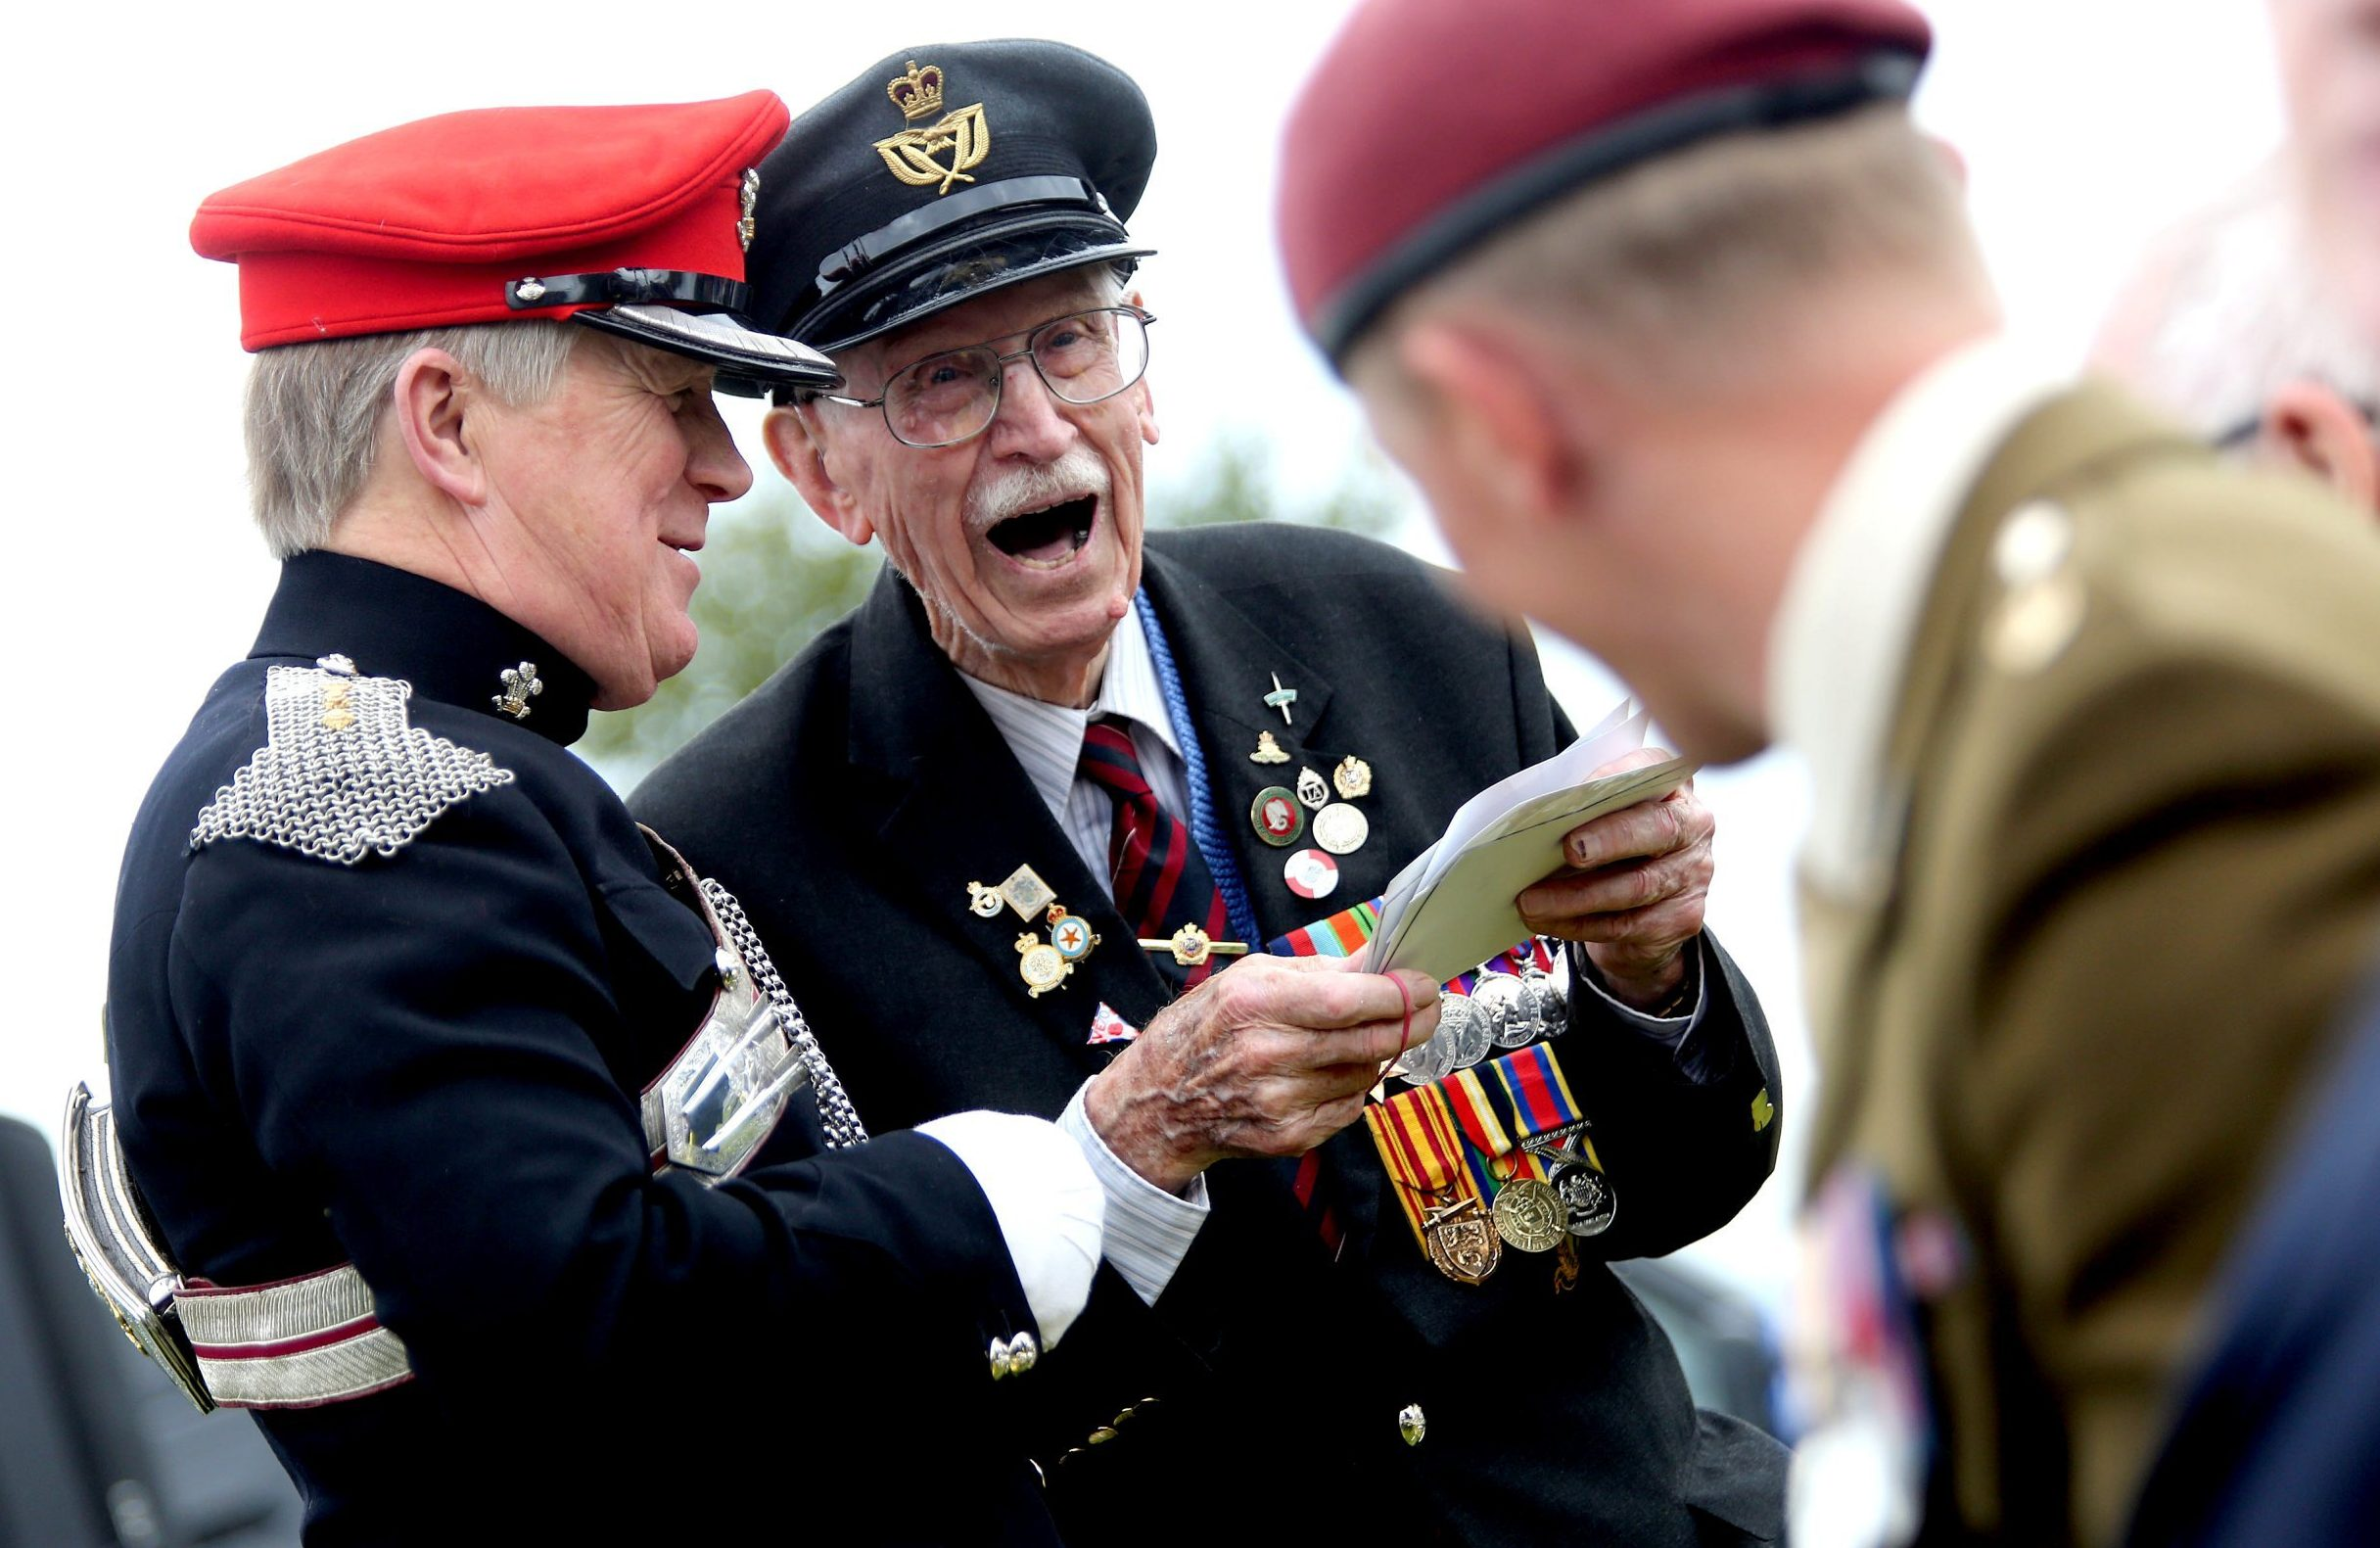 BNPS.co.uk (01202 558833) Pic: BournemouthEcho/BNPS Dunkirk veteran Arthur Taylor at the annual Burton Armed Forces and Veterans Day event parade and service at the village green in Burton in 2015. One of the last veterans of the Dunkirk evacuation has died aged 98. Arthur Taylor was one of the 330,000 men rescued from the beaches of the French town after he survived nearly two days of being dive-bombed by German planes. The RAF radio operator witnessed comrades stood next to him cut down by machine gun fire from the low-flying enemy aircraft. Arthur, from Christchurch, Dorset, channelled the famous 'Dunkirk Spirit' to rejoin the war effort and played his part in the crucial Battle of Britain three months later. In his latter years he advised director Christopher Nolan on the 2017 movie Dunkirk.